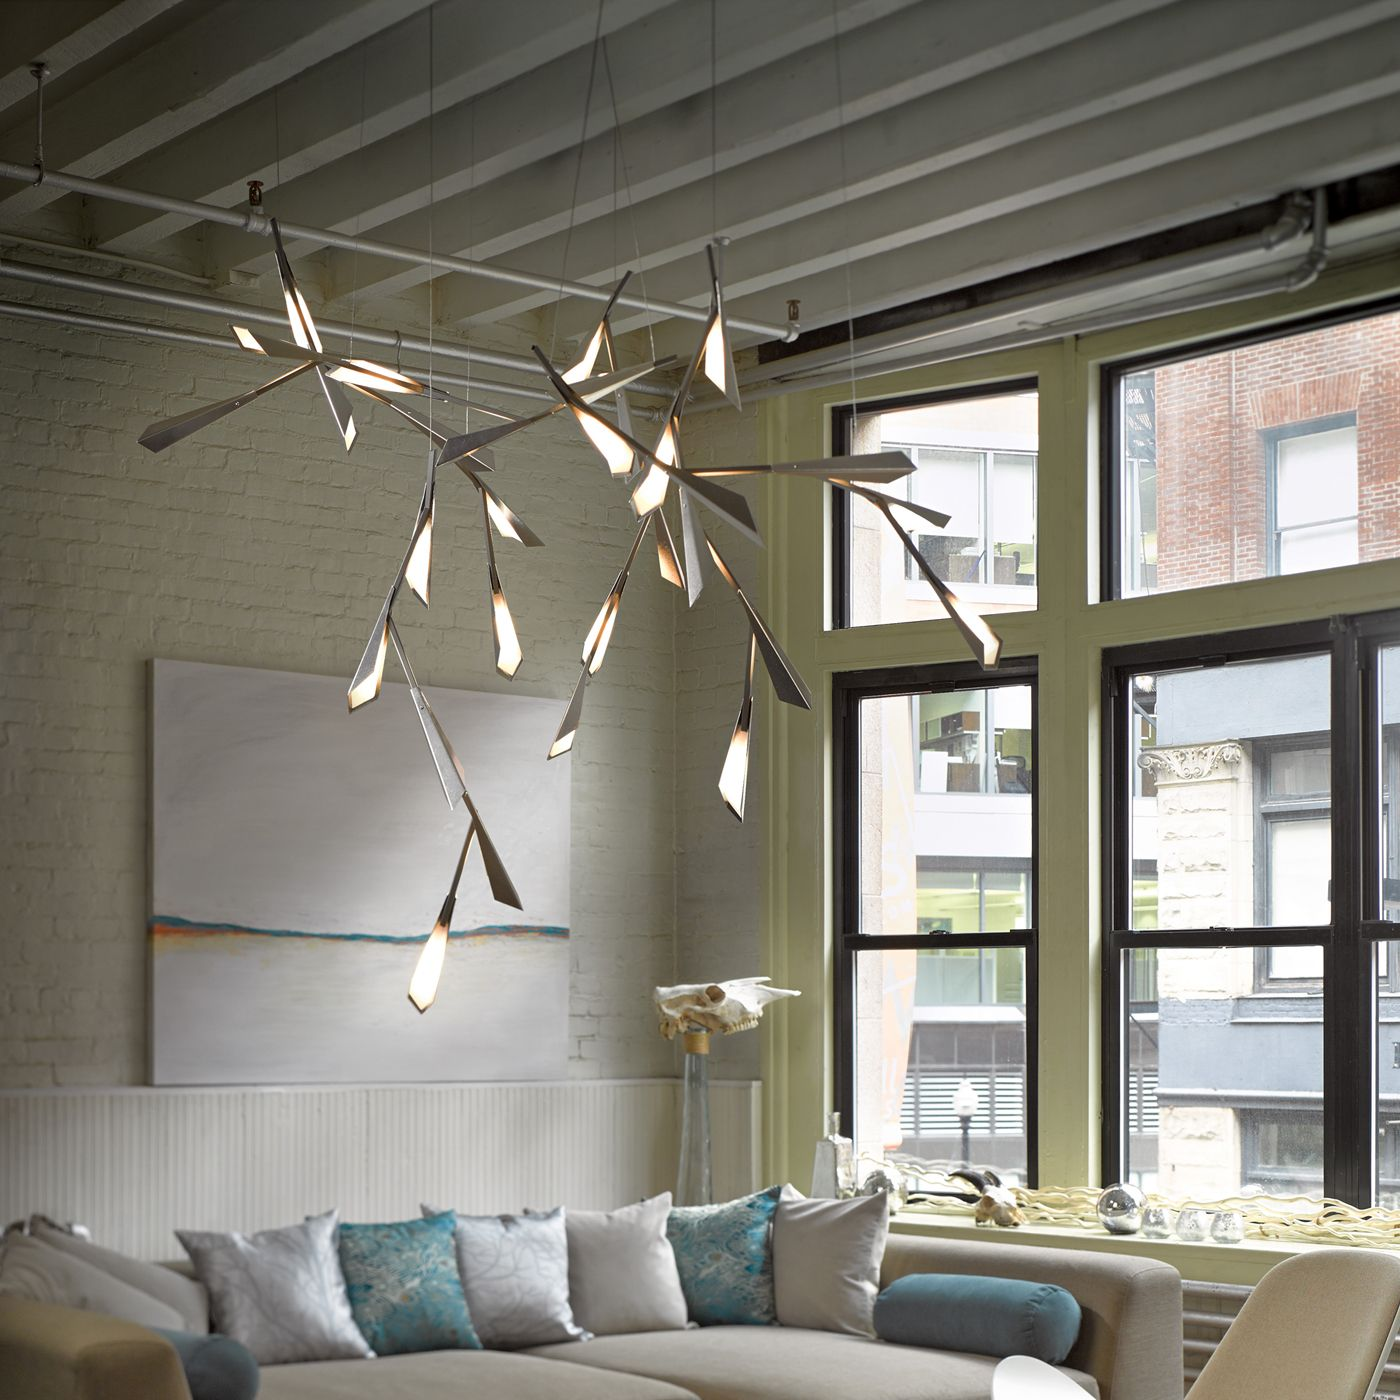 Hubbardton Forge Modern: Hubbardton Forge NO Quill Large Pendant